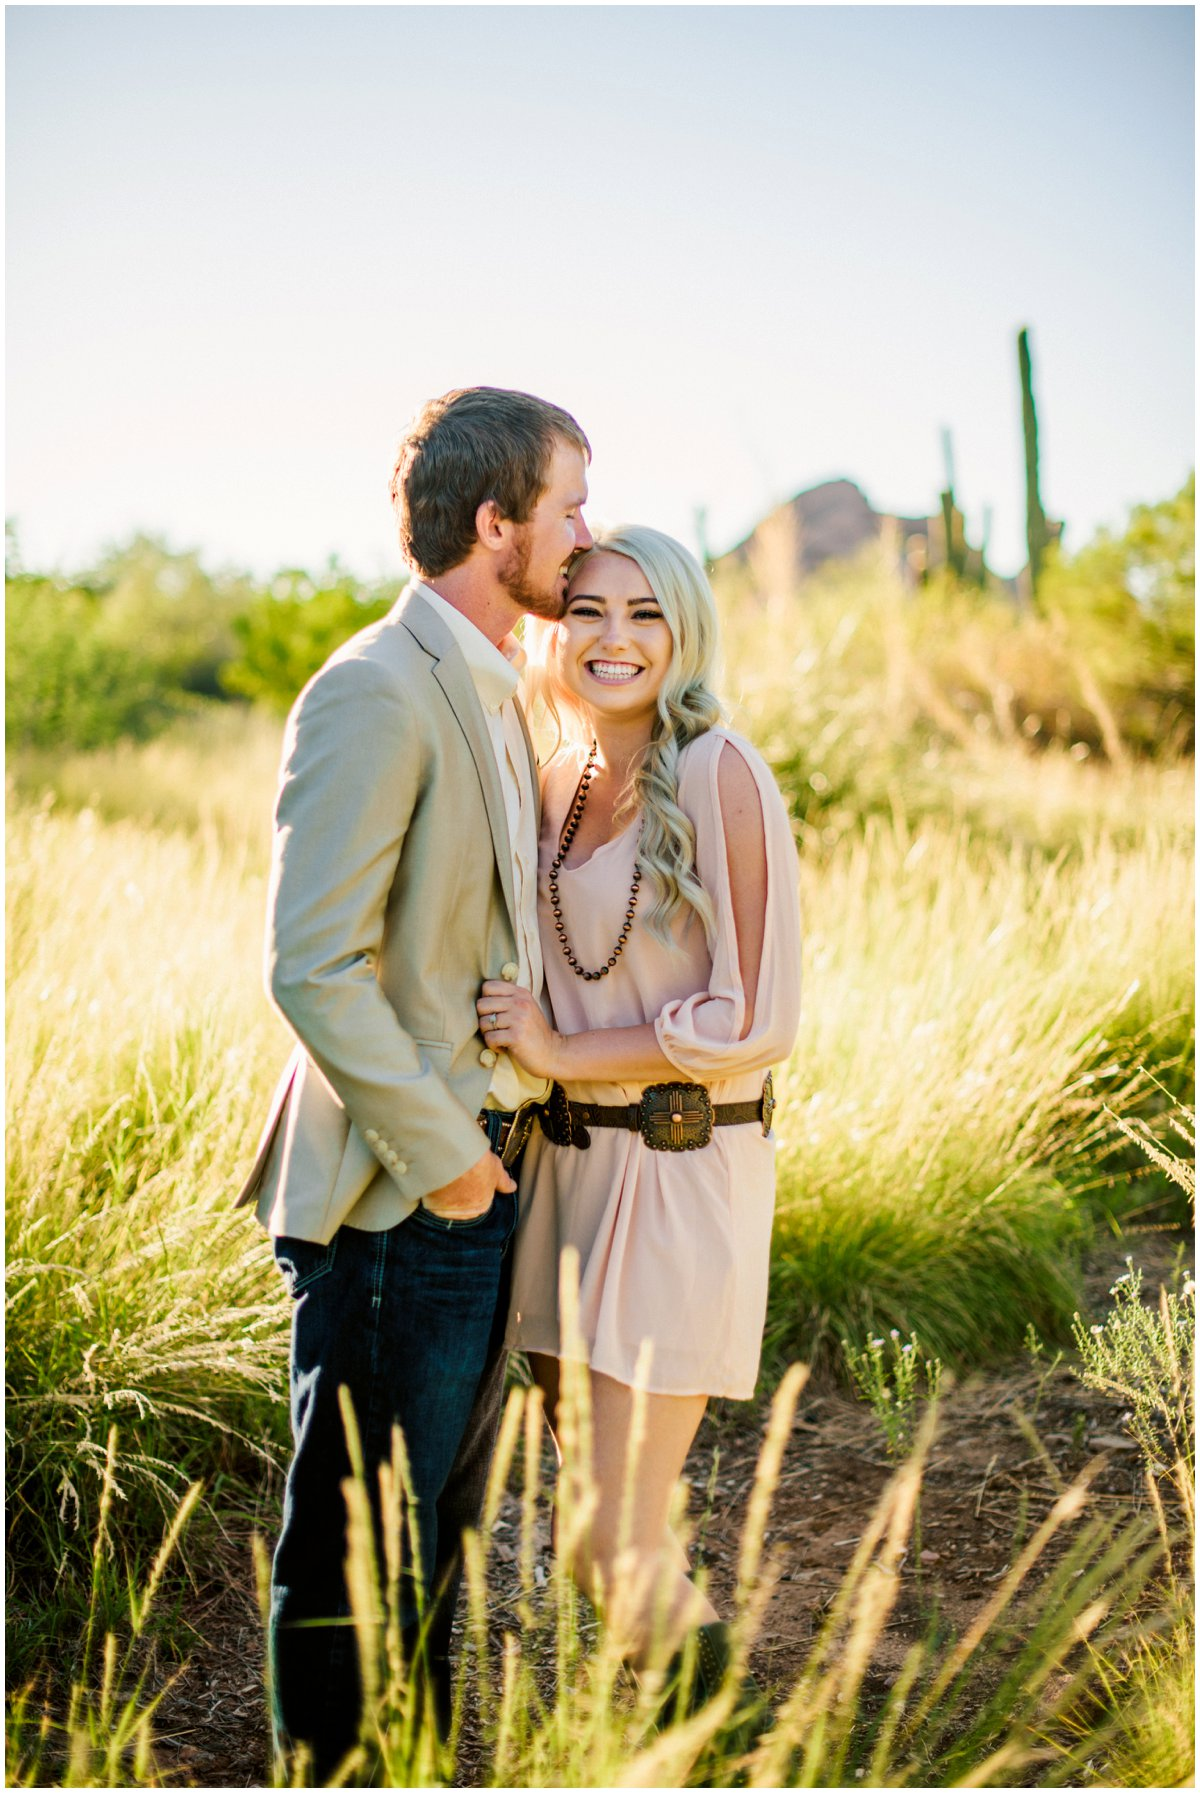 Couples Desert Botanical Garden Engagement Photos with a rustic, country feel in Phoenix Arizona.